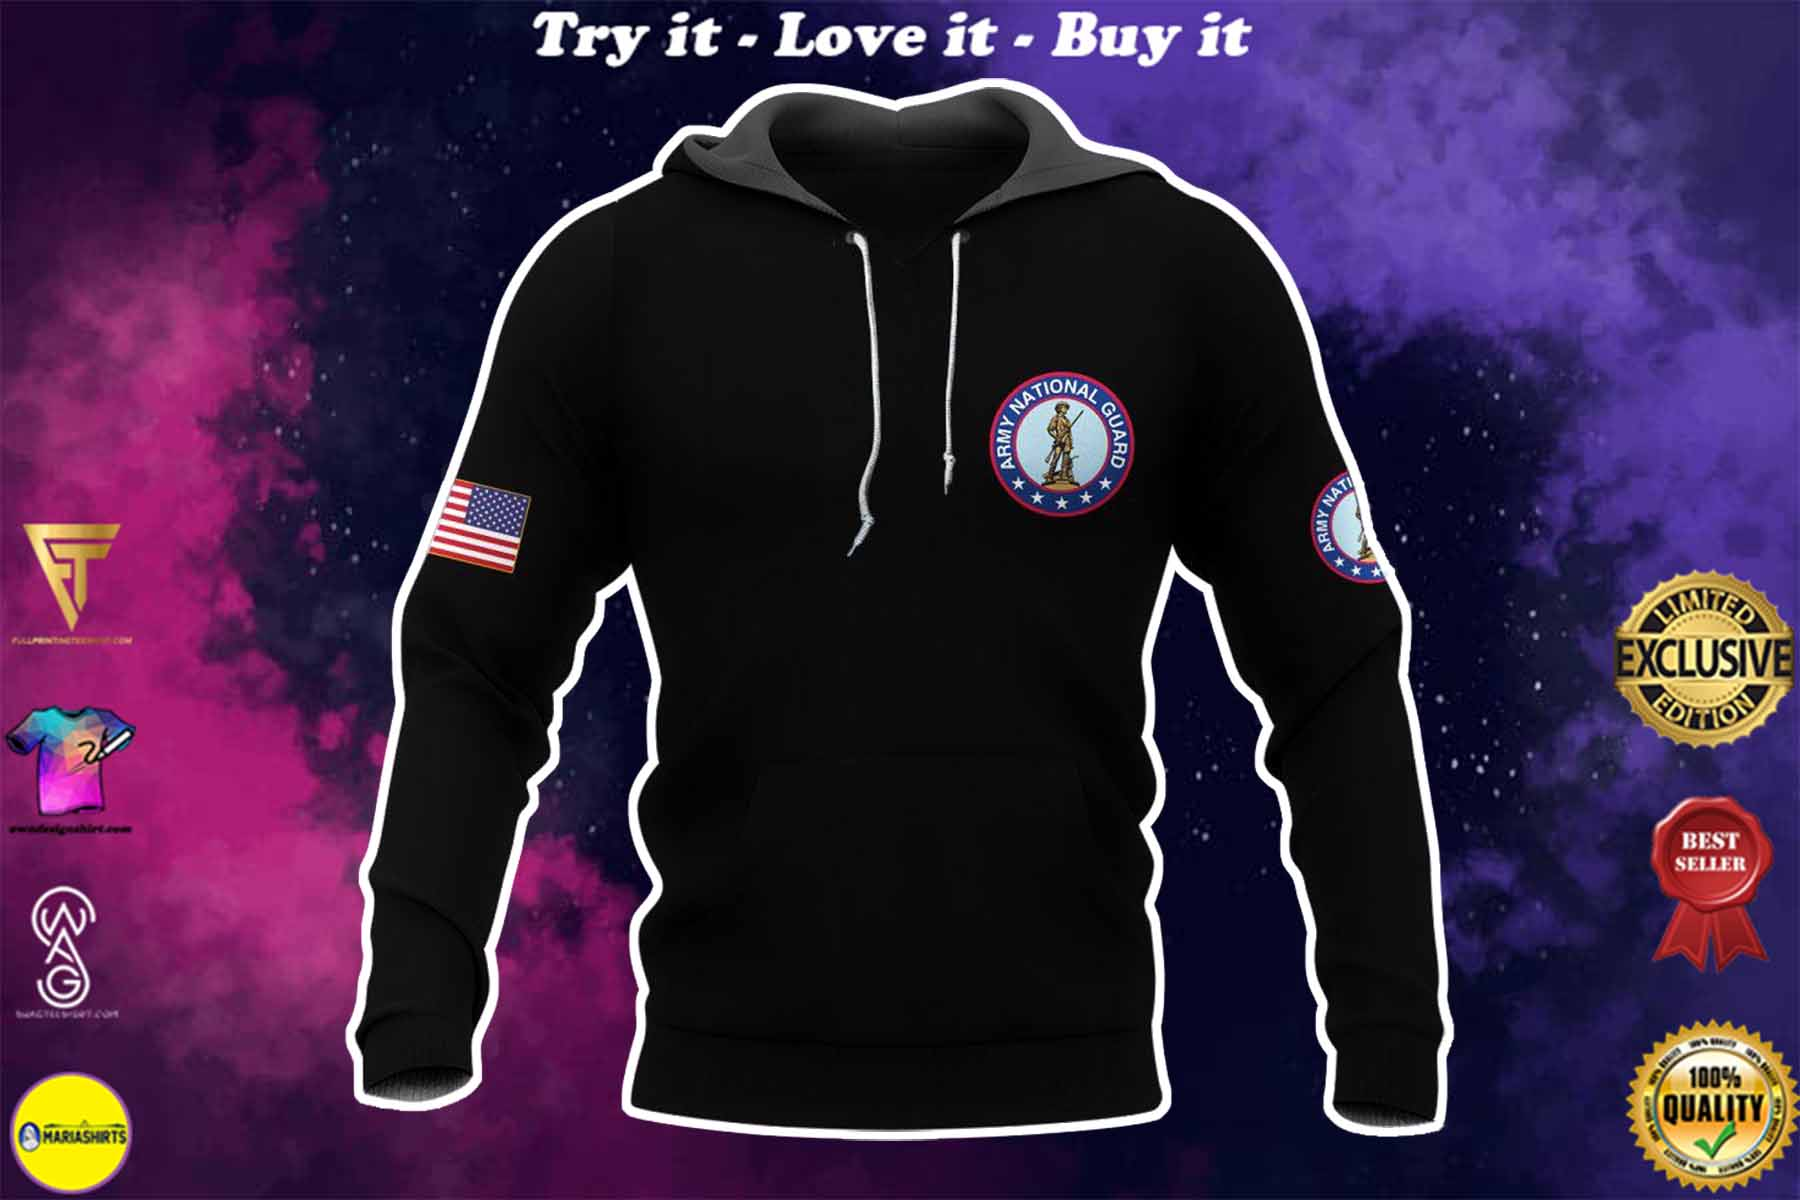 [highest selling] army national guard warrior molon labe full over printed shirt - maria